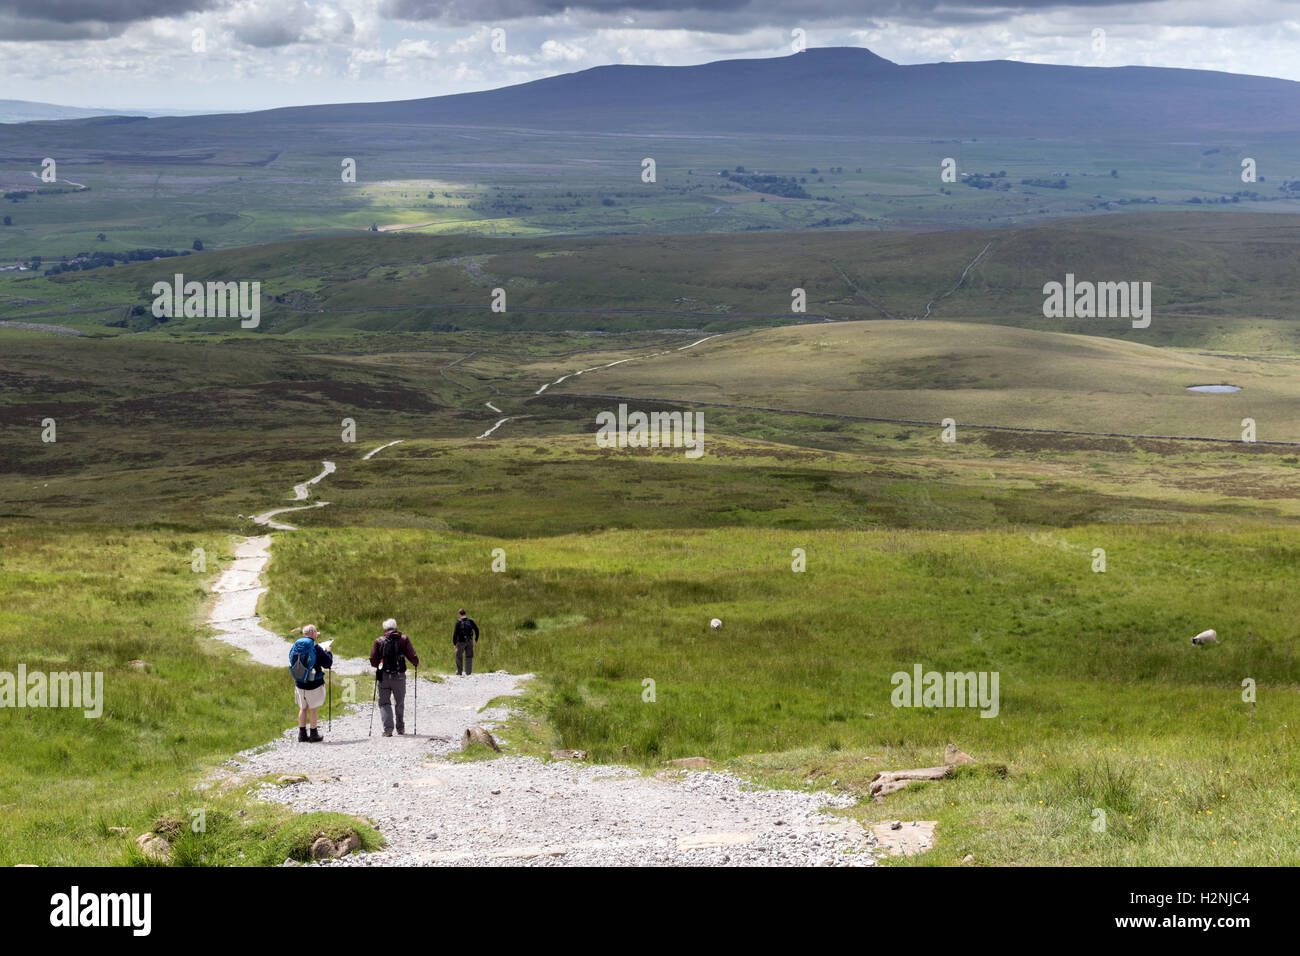 Walkers descend the Pennine Way path on Pen-y-ghent, with Ingleborough in the far distance - Stock Image